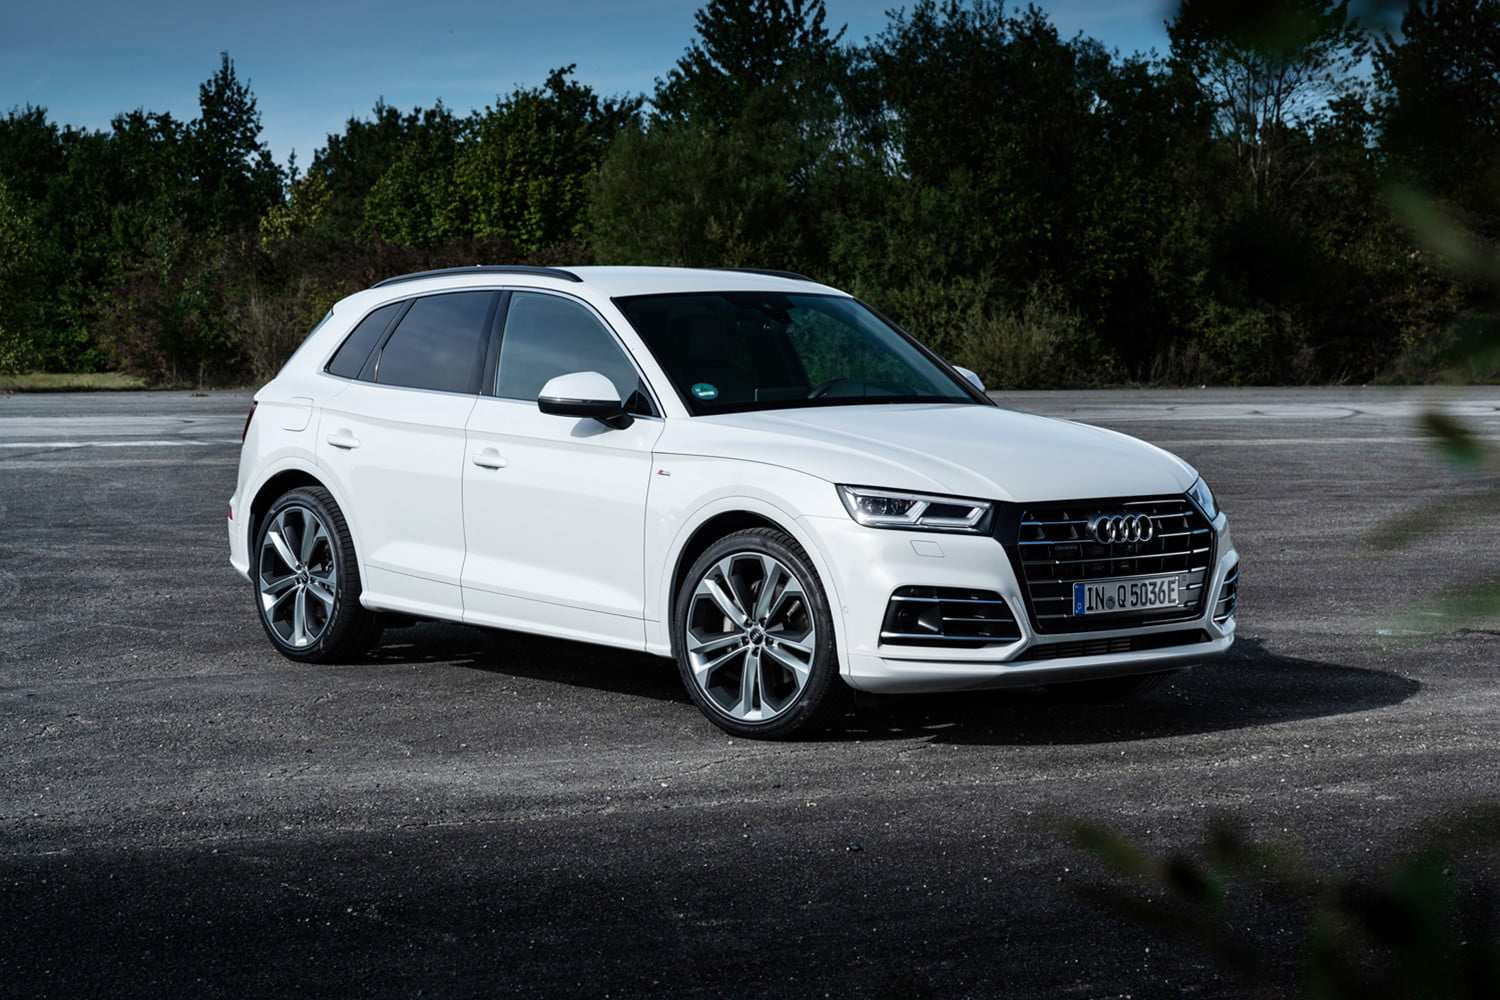 97 The Release Date Of 2020 Audi Q5 Spy Shoot